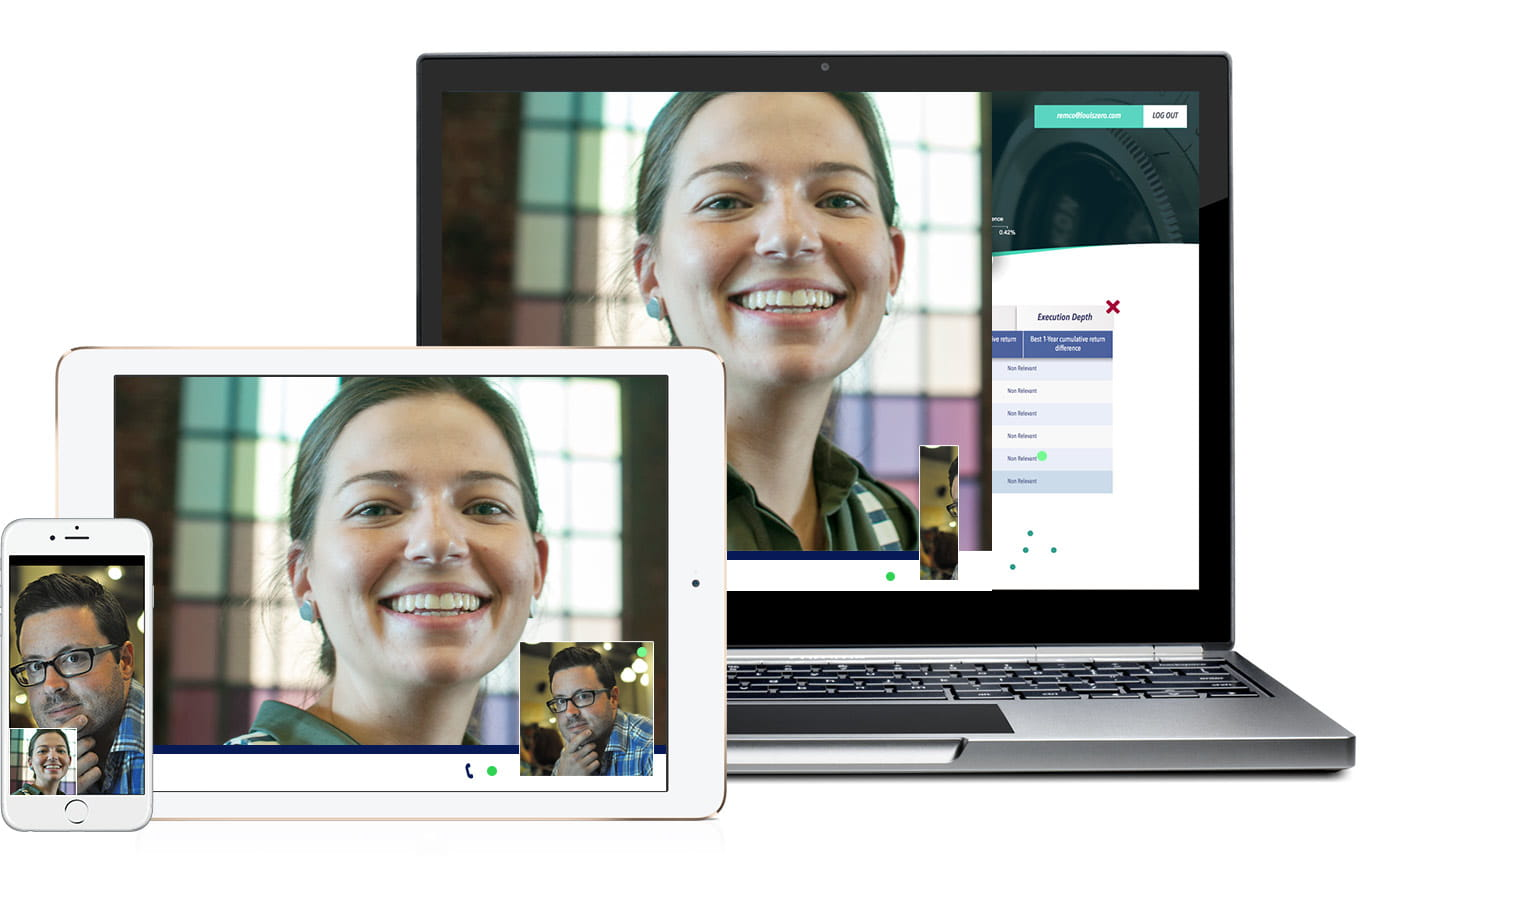 Several devices show OmniJoin web conferencing, video conferencing and online meeting software